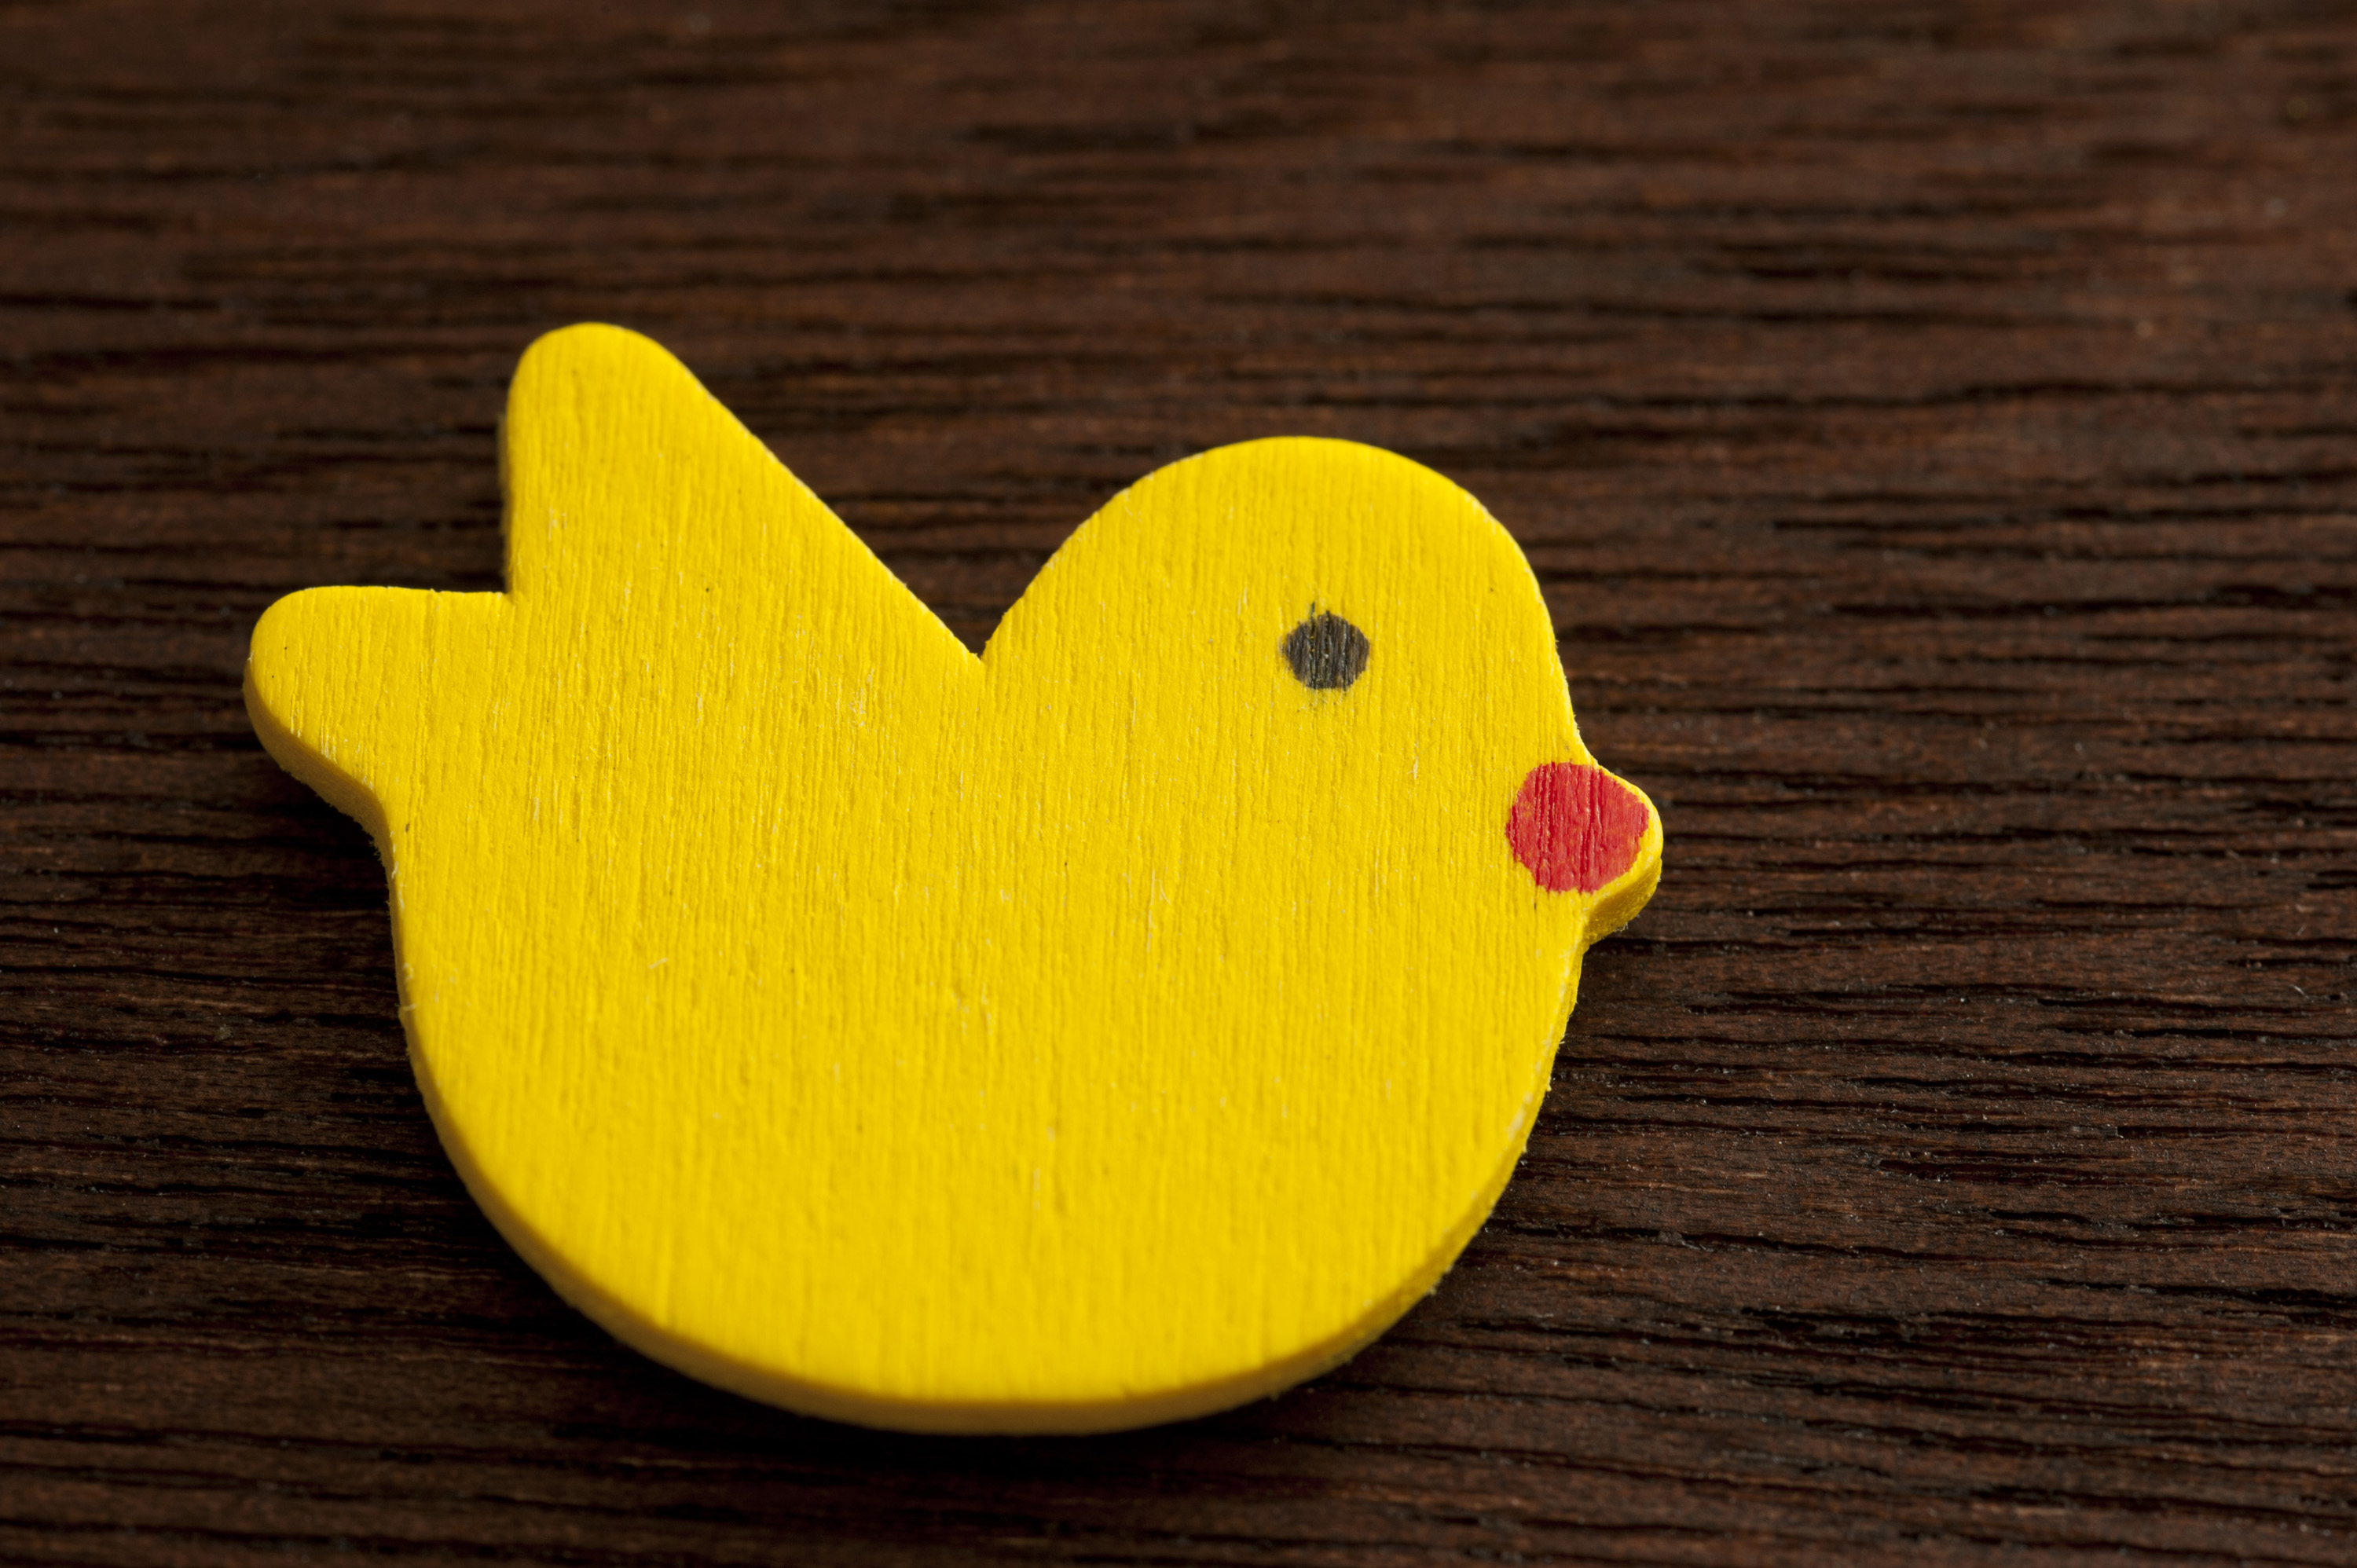 wood_easter_chick.jpg - Cut and painted wooden chick for Easter holiday. View from above over dark wood table.